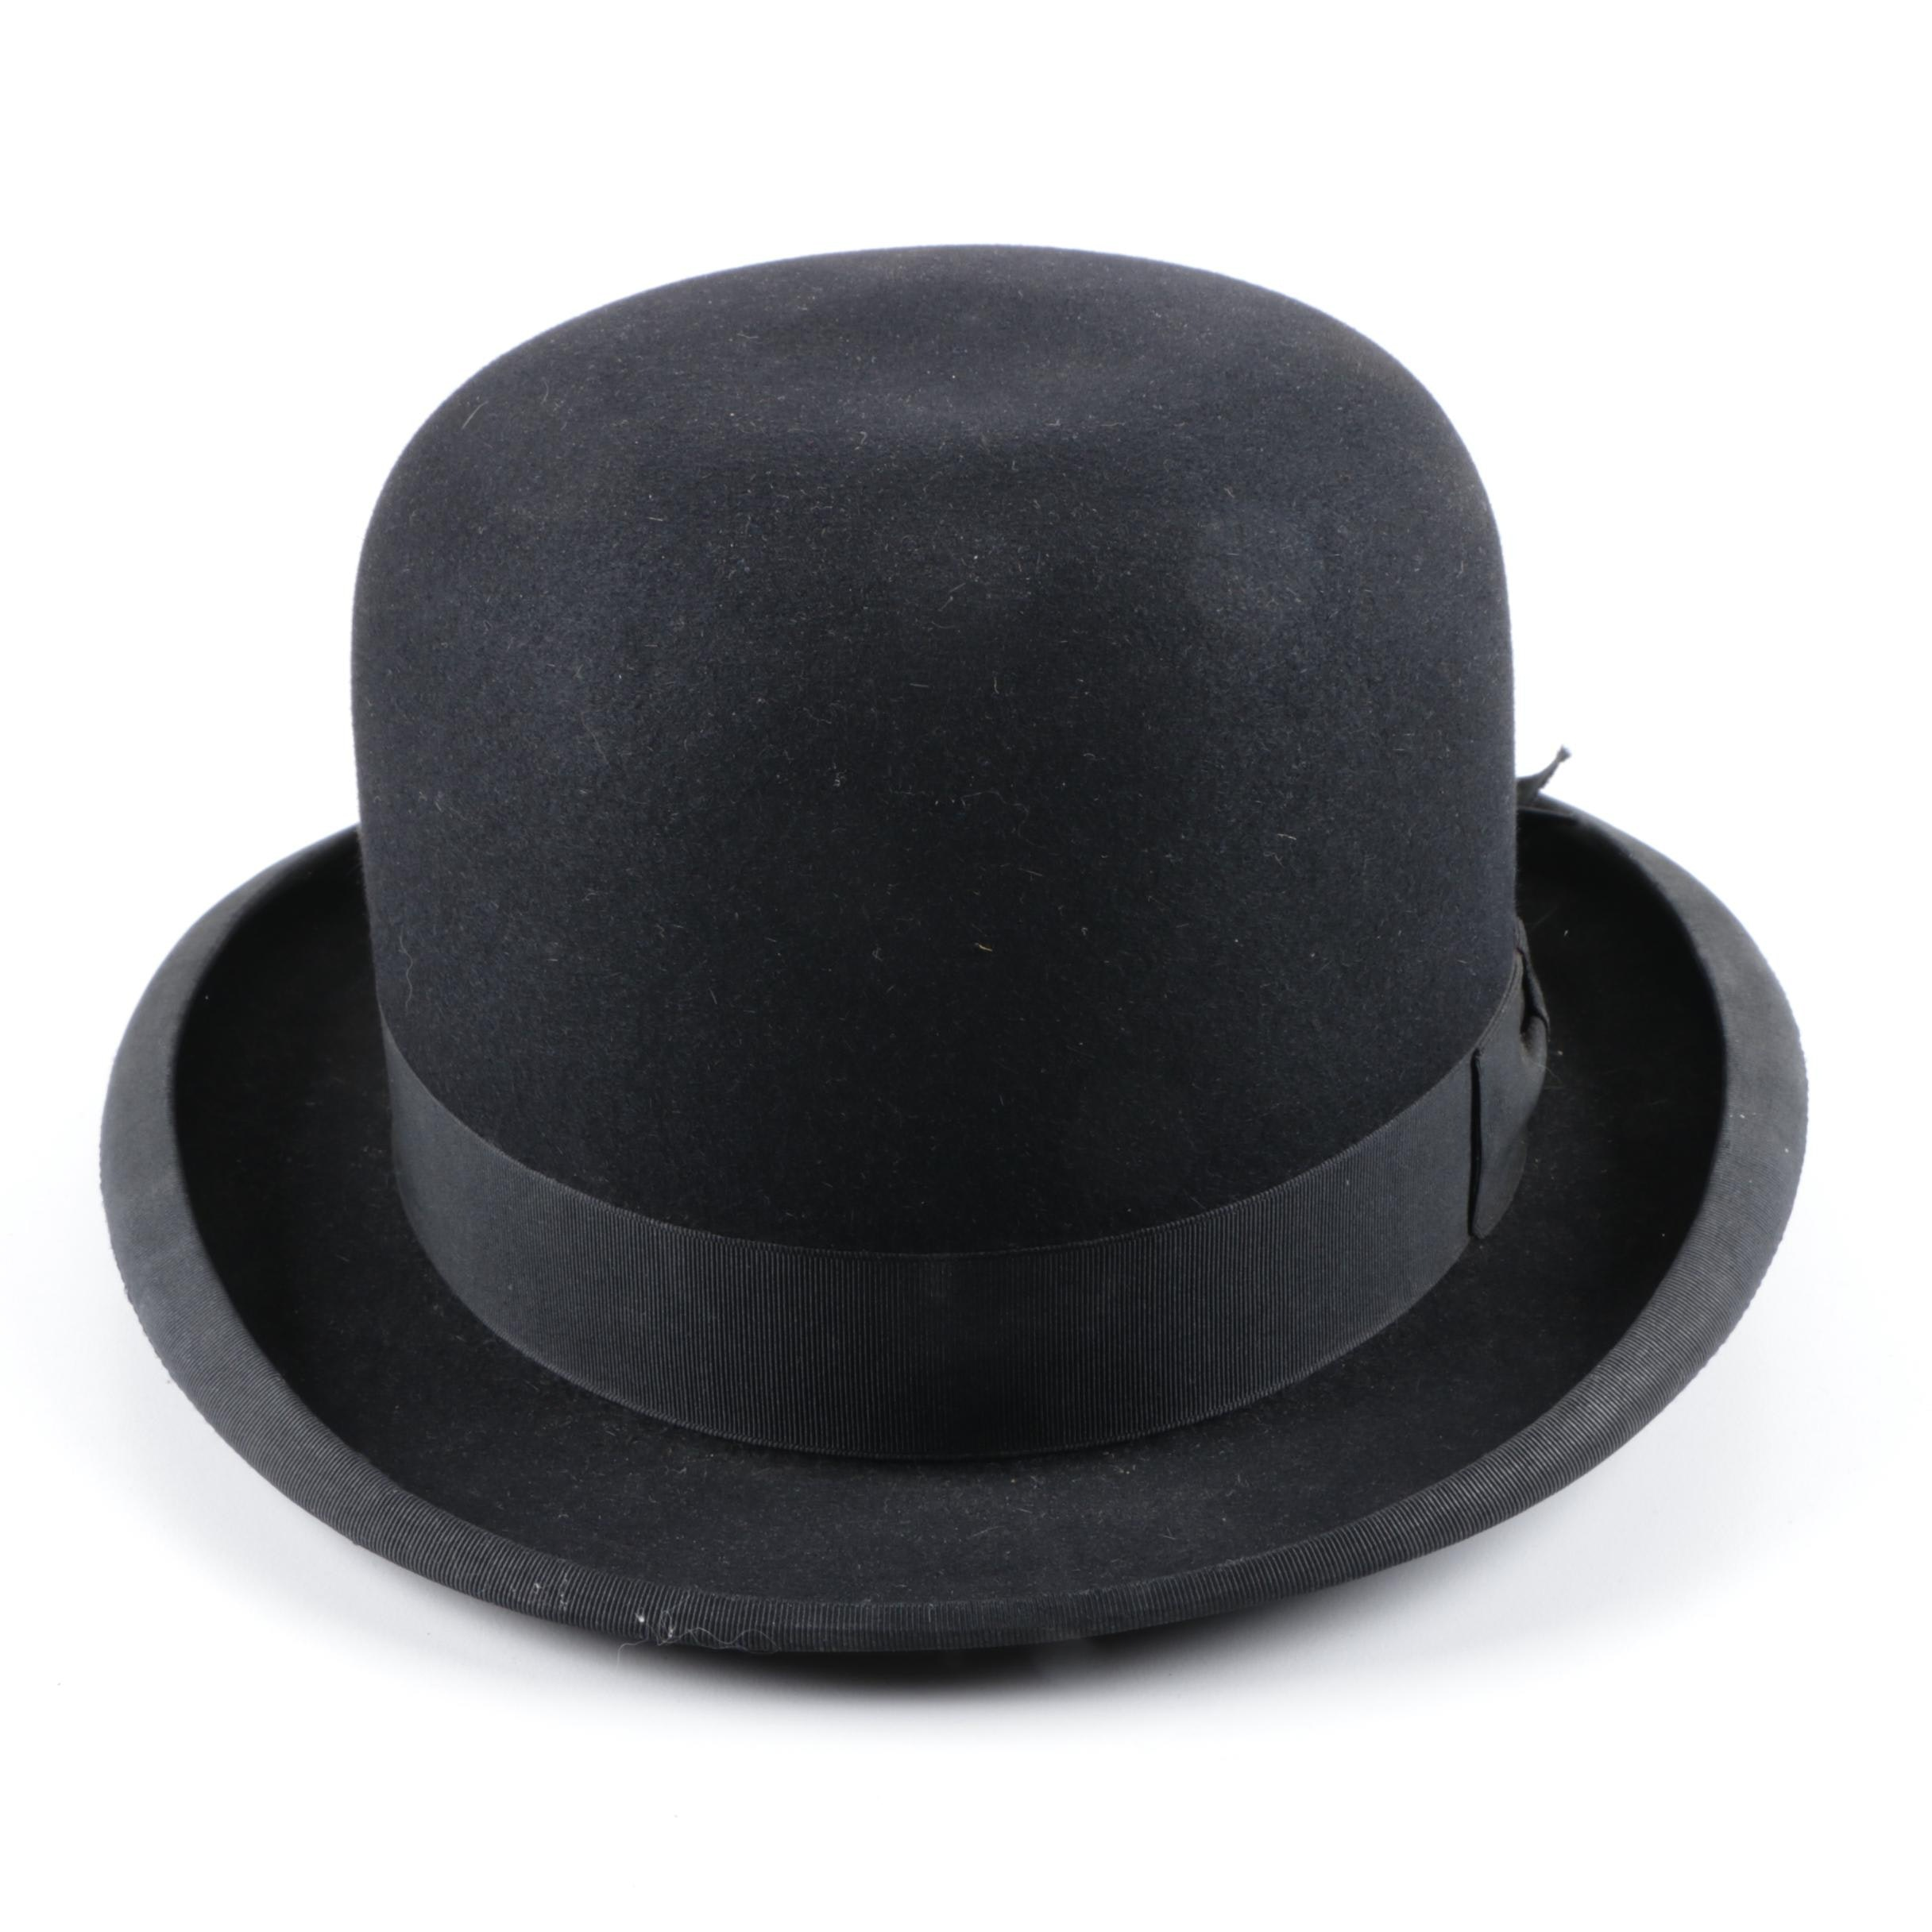 Vintage Wormser Black Felt Bowler Hat with Knox Hat Box